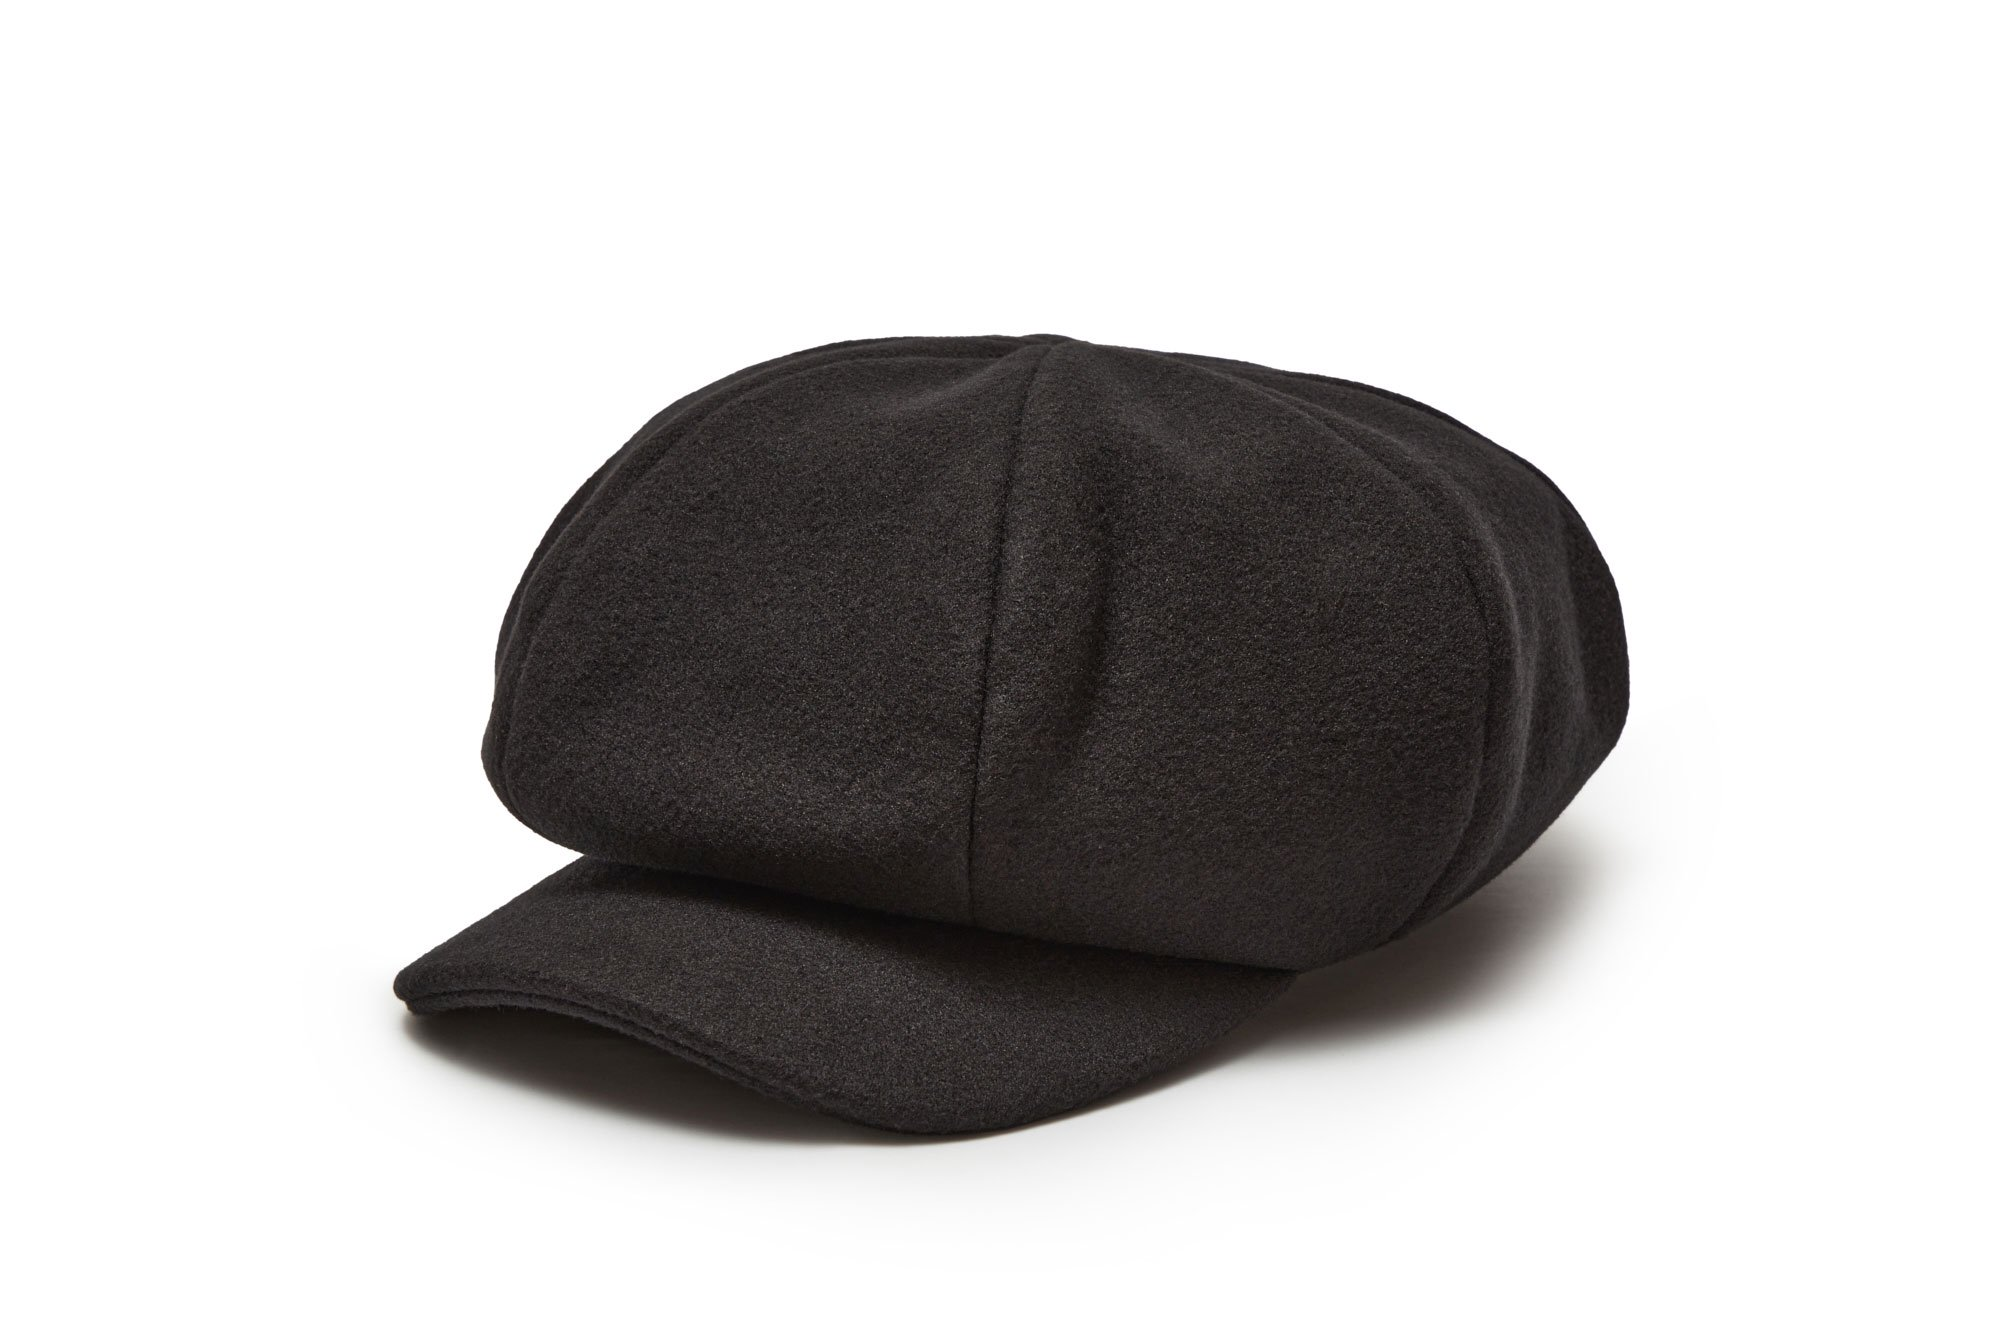 <img class='new_mark_img1' src='https://img.shop-pro.jp/img/new/icons14.gif' style='border:none;display:inline;margin:0px;padding:0px;width:auto;' />2020AW collection Casquette BK